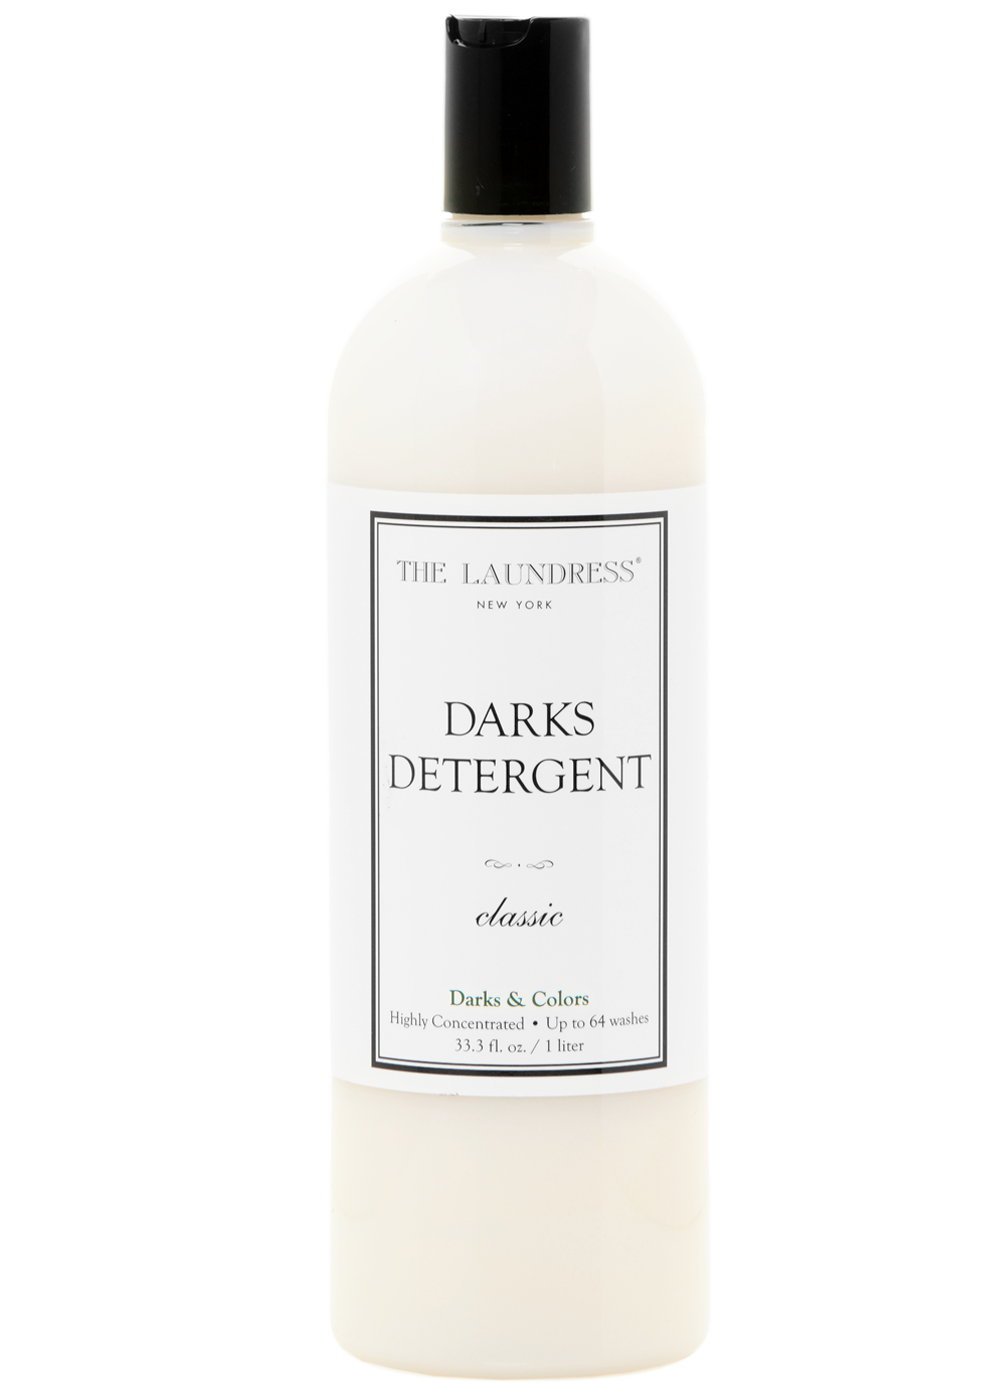 Darks Detergent by the Laundress